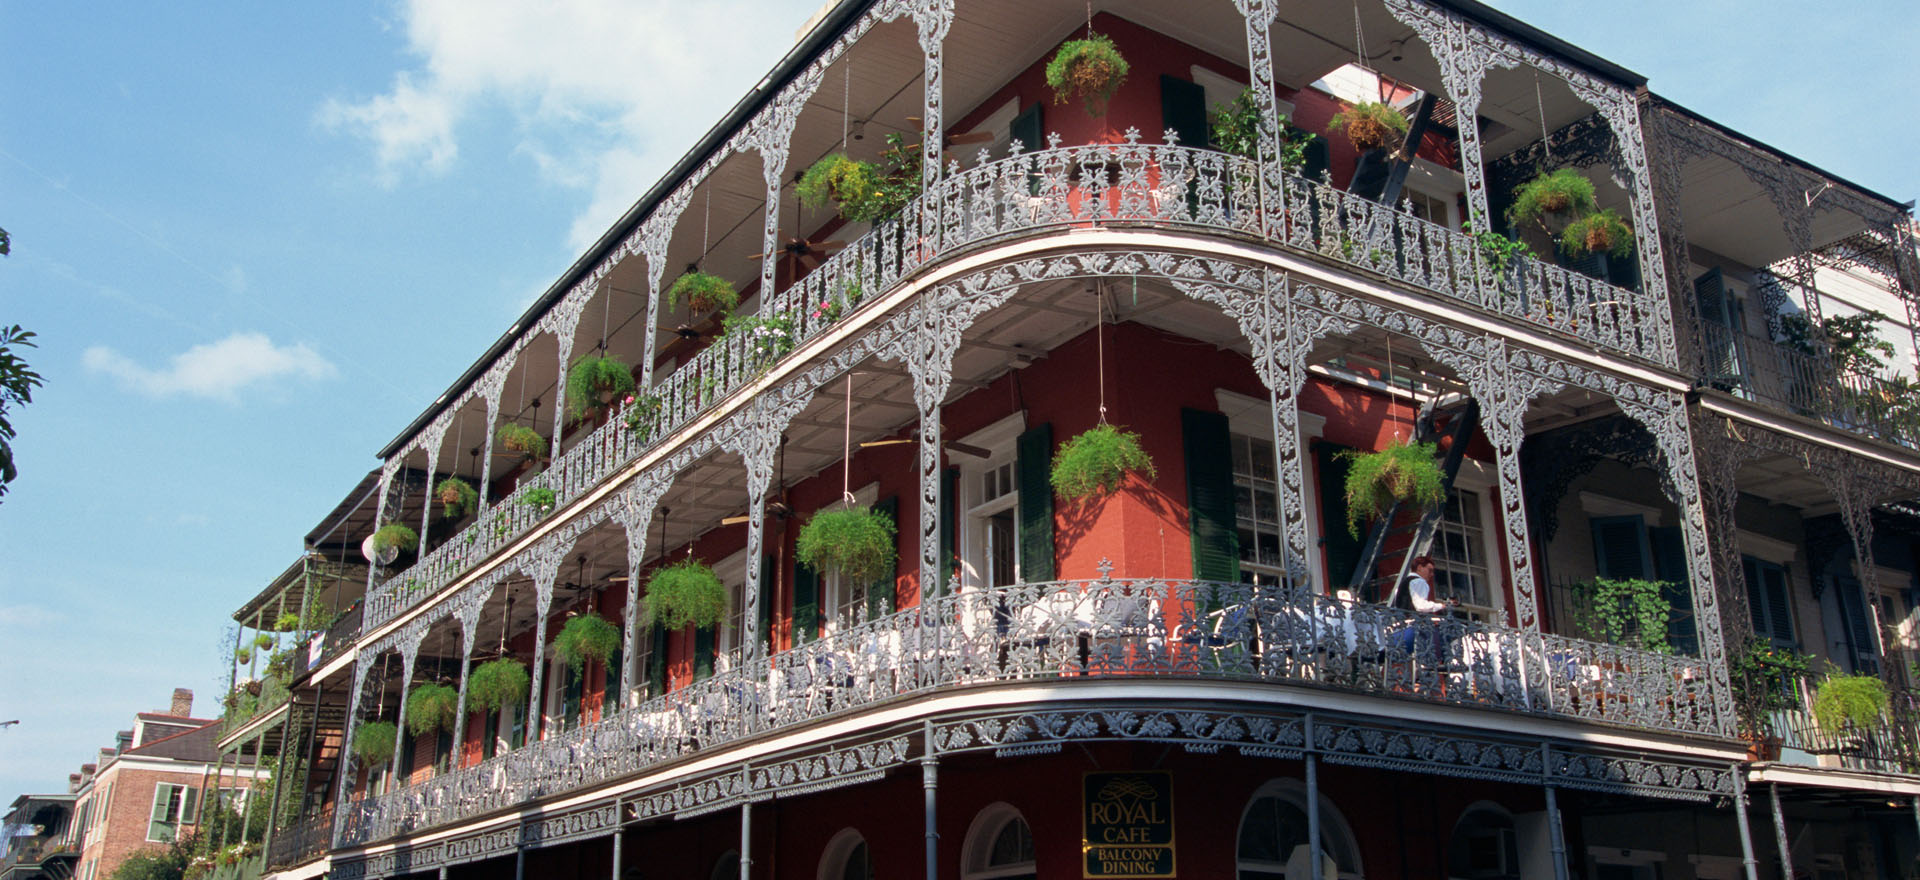 Typical French Quarter building with veranda and hanging plants in New Orleans, Louisiana